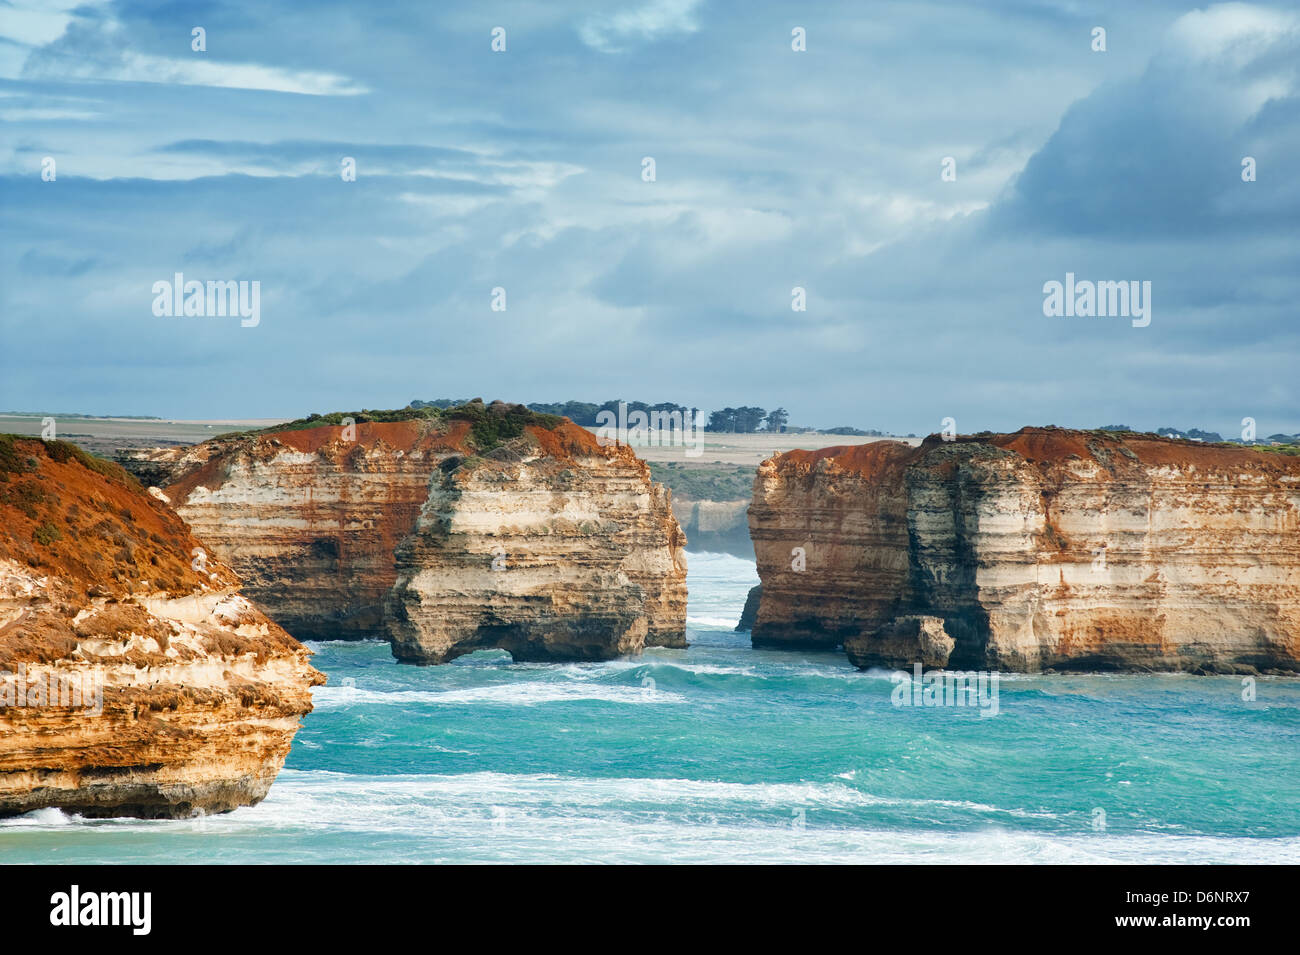 famous Rocks in the Bay of Islands Coastal Park,Great Ocean Road, Australia - Stock Image